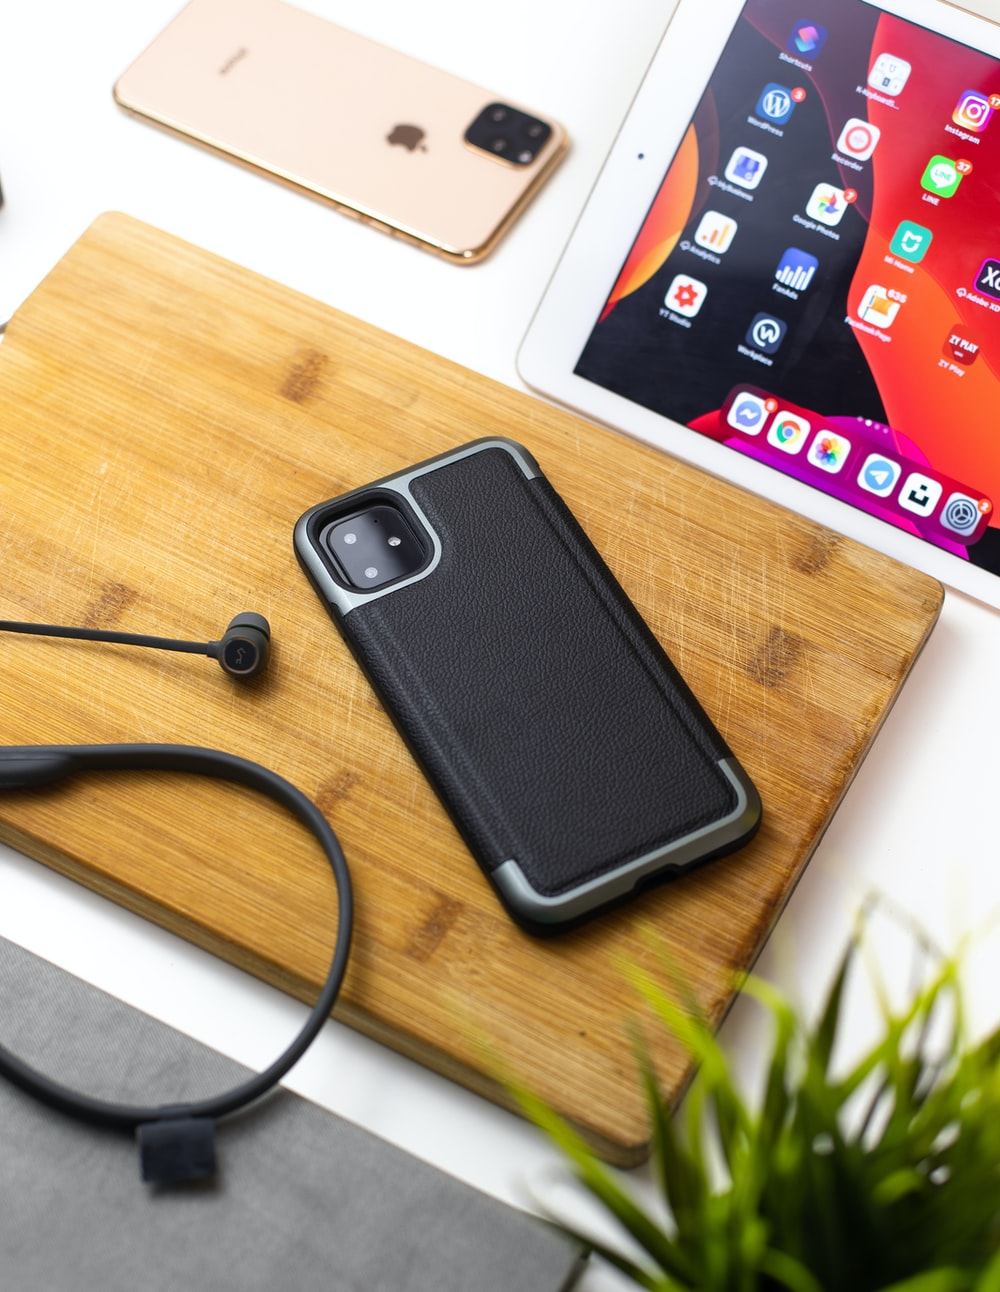 iPhone 11 on wood chopping board beside iPad and rose gold iPhone 11